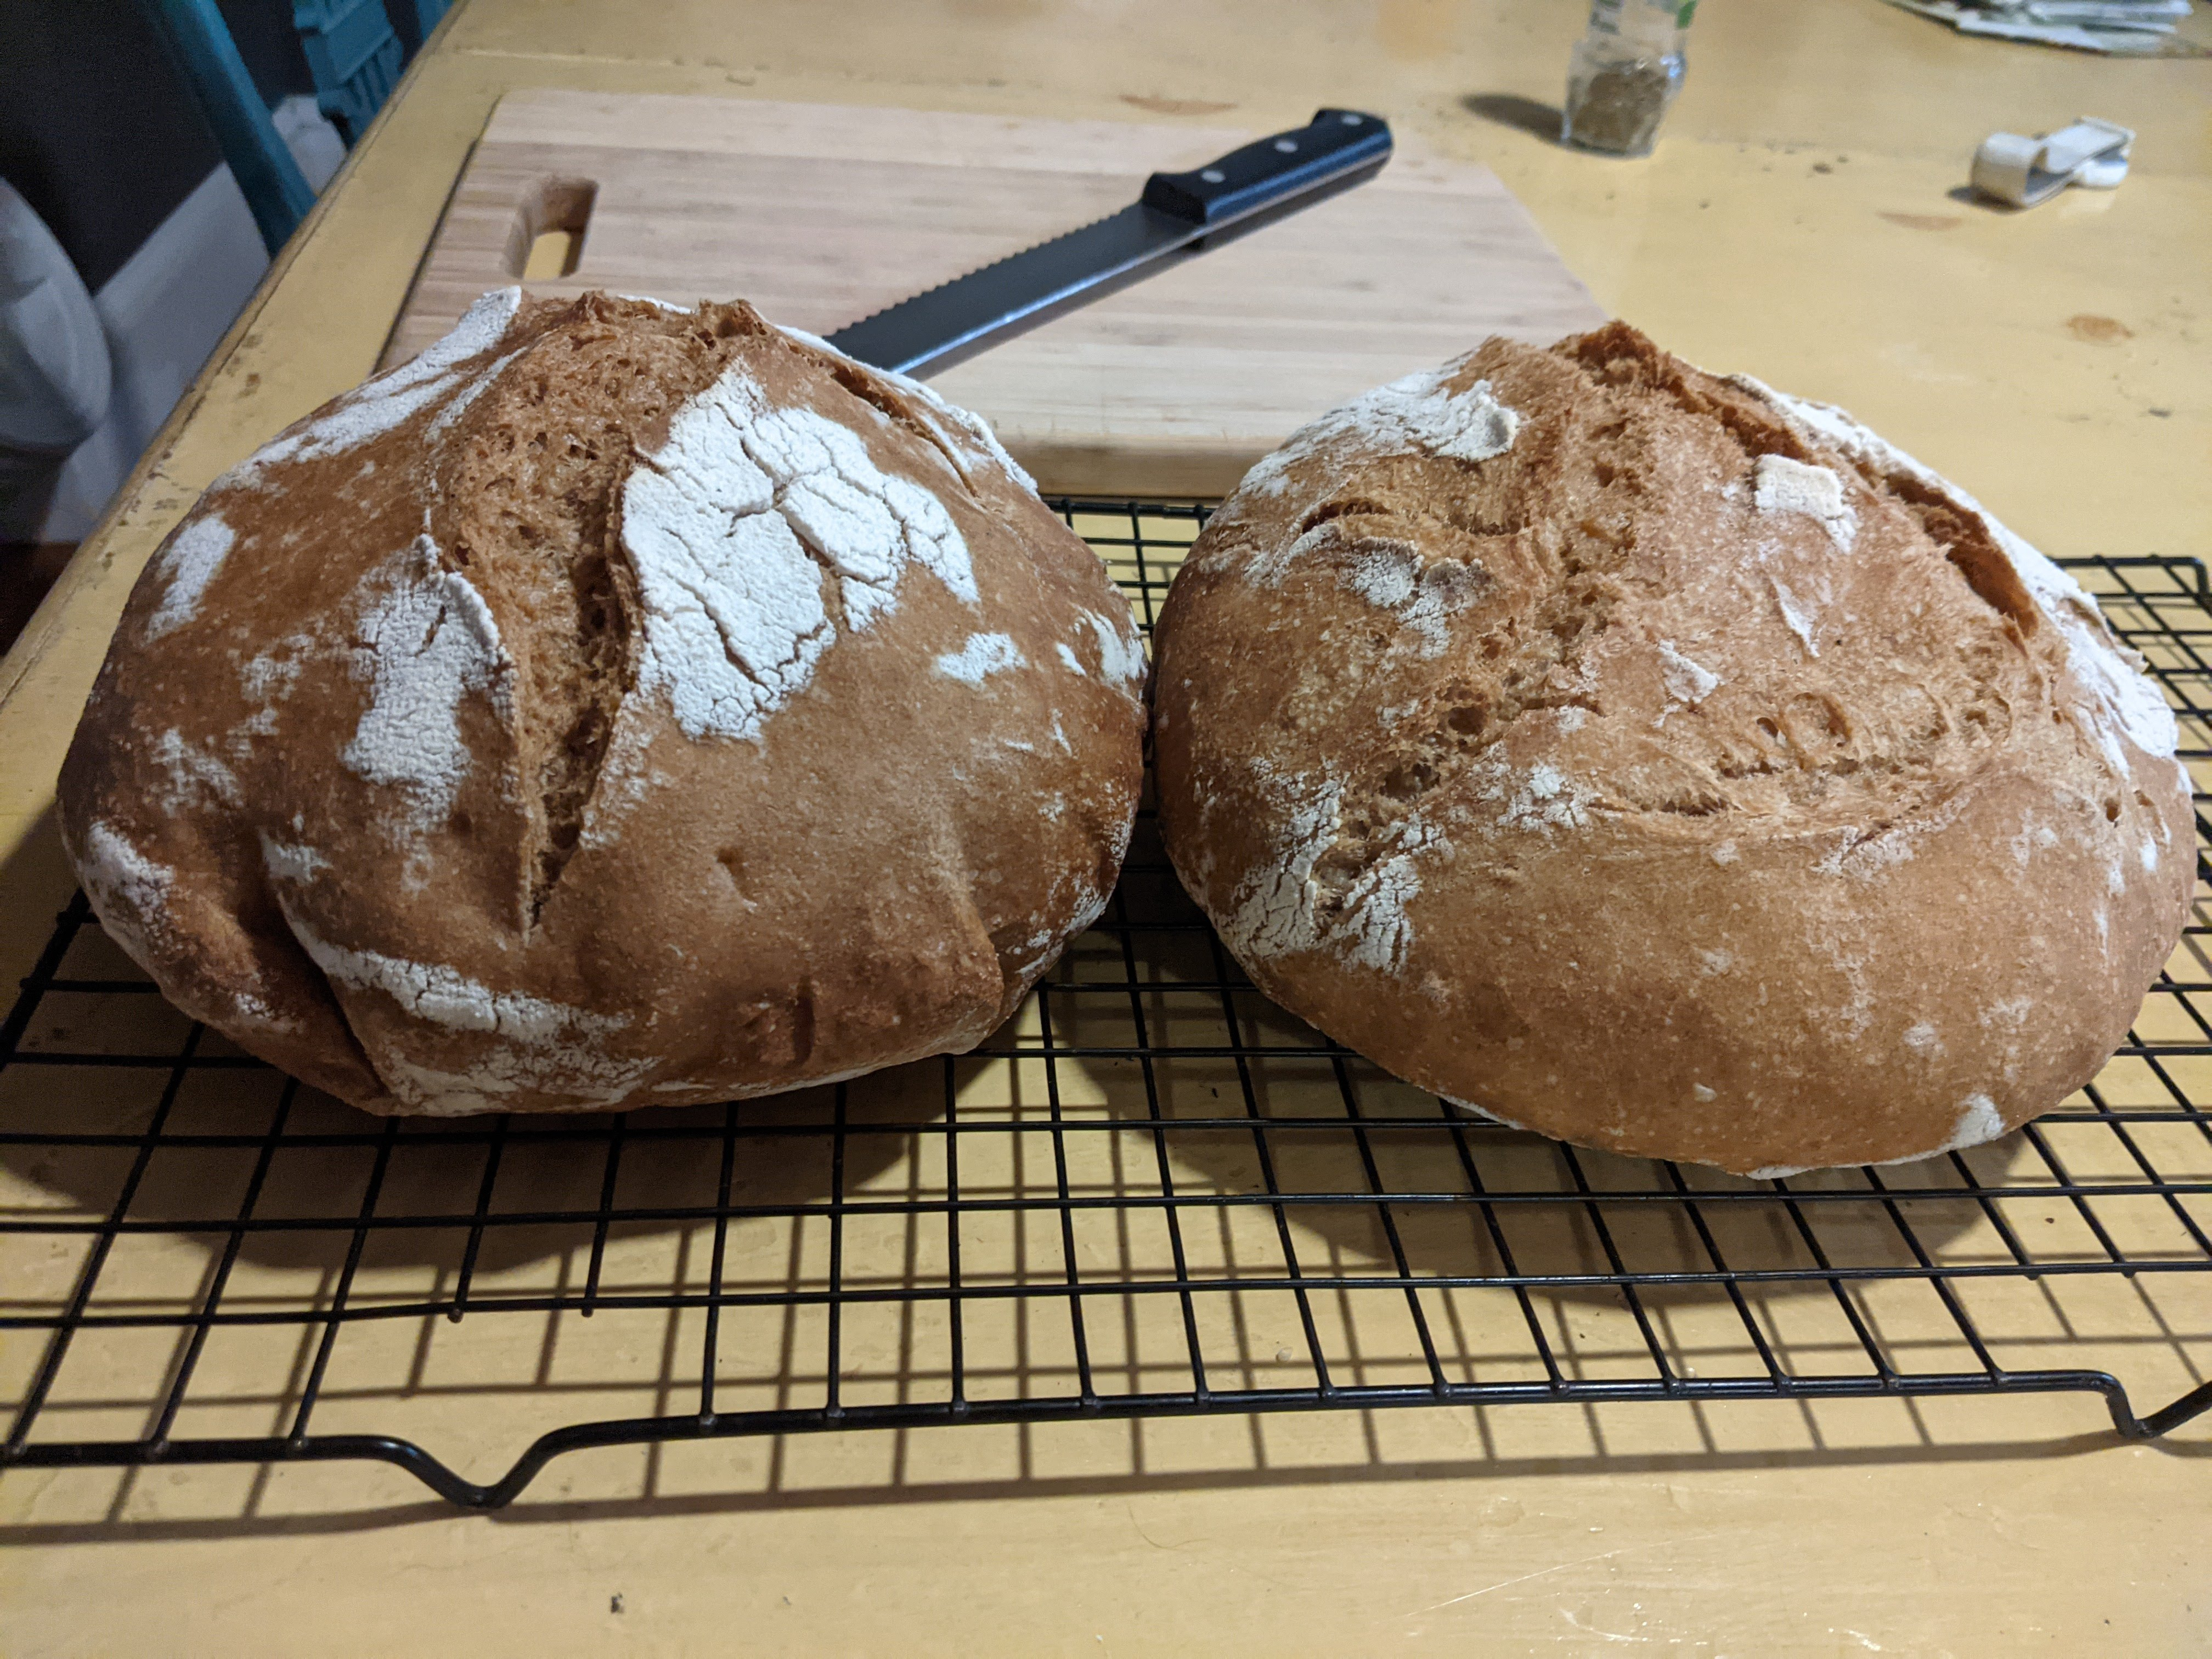 two loaves of bread side by side with cutting board and bread knife in background